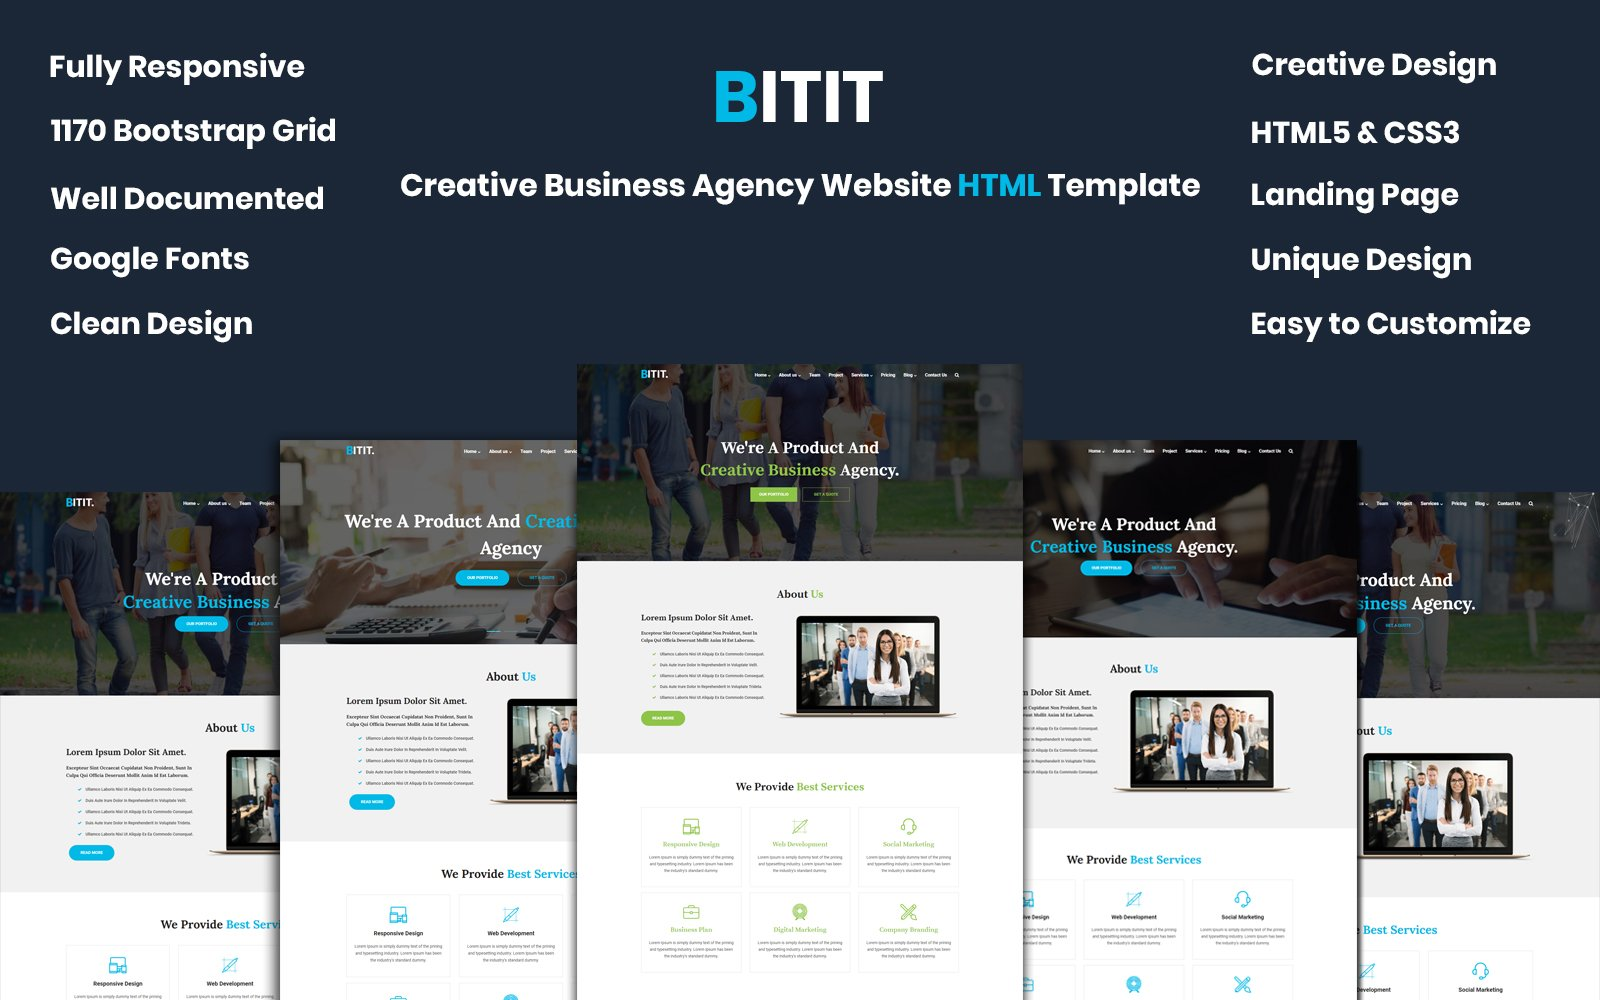 BITIT- Creative Business Agency Website Template